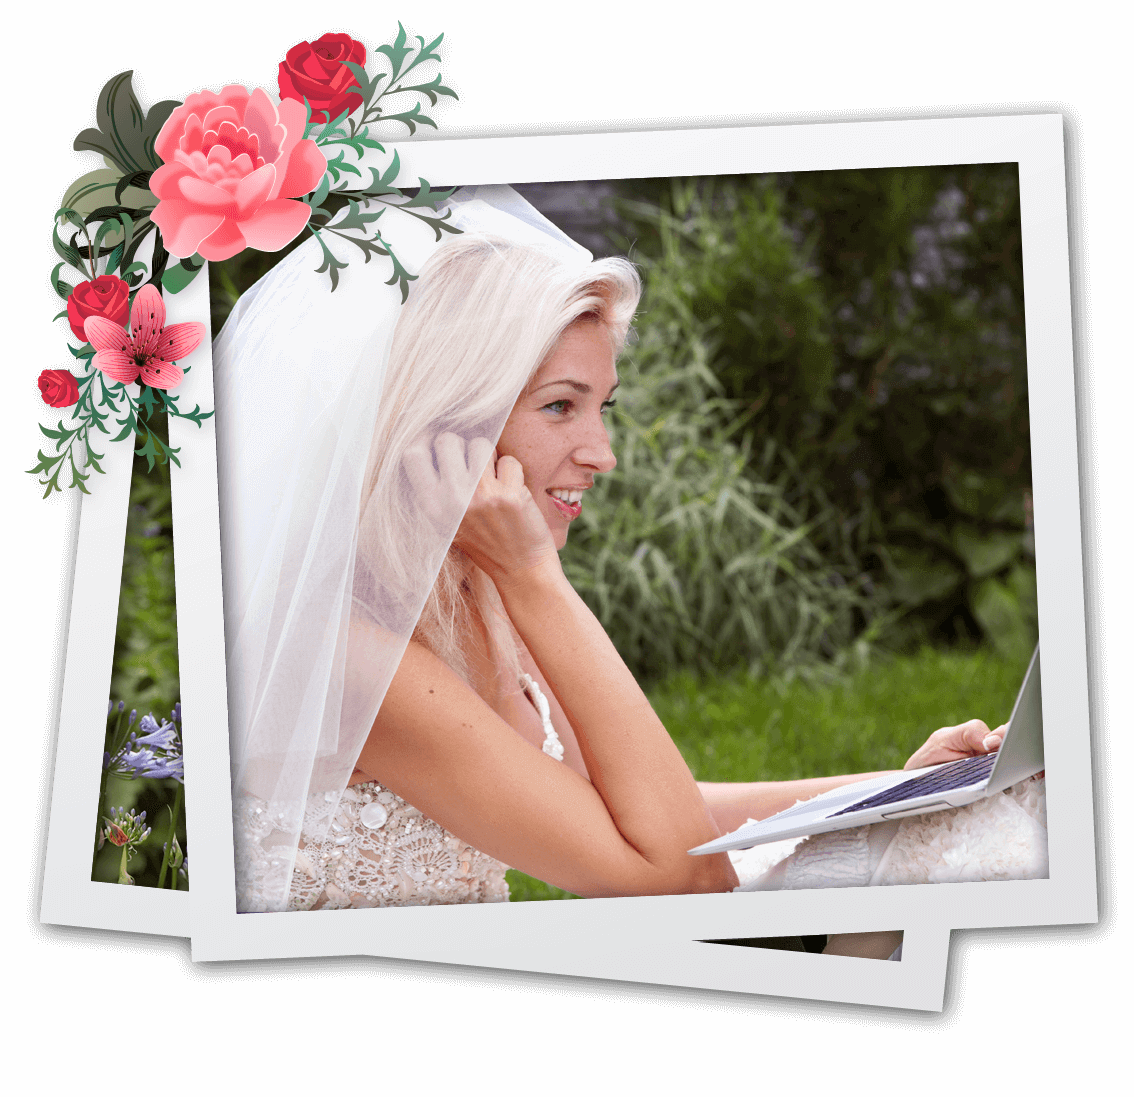 Wedding Photography Tips Flash: Wedding Photography Tips And Tricks On How To Become A Pro